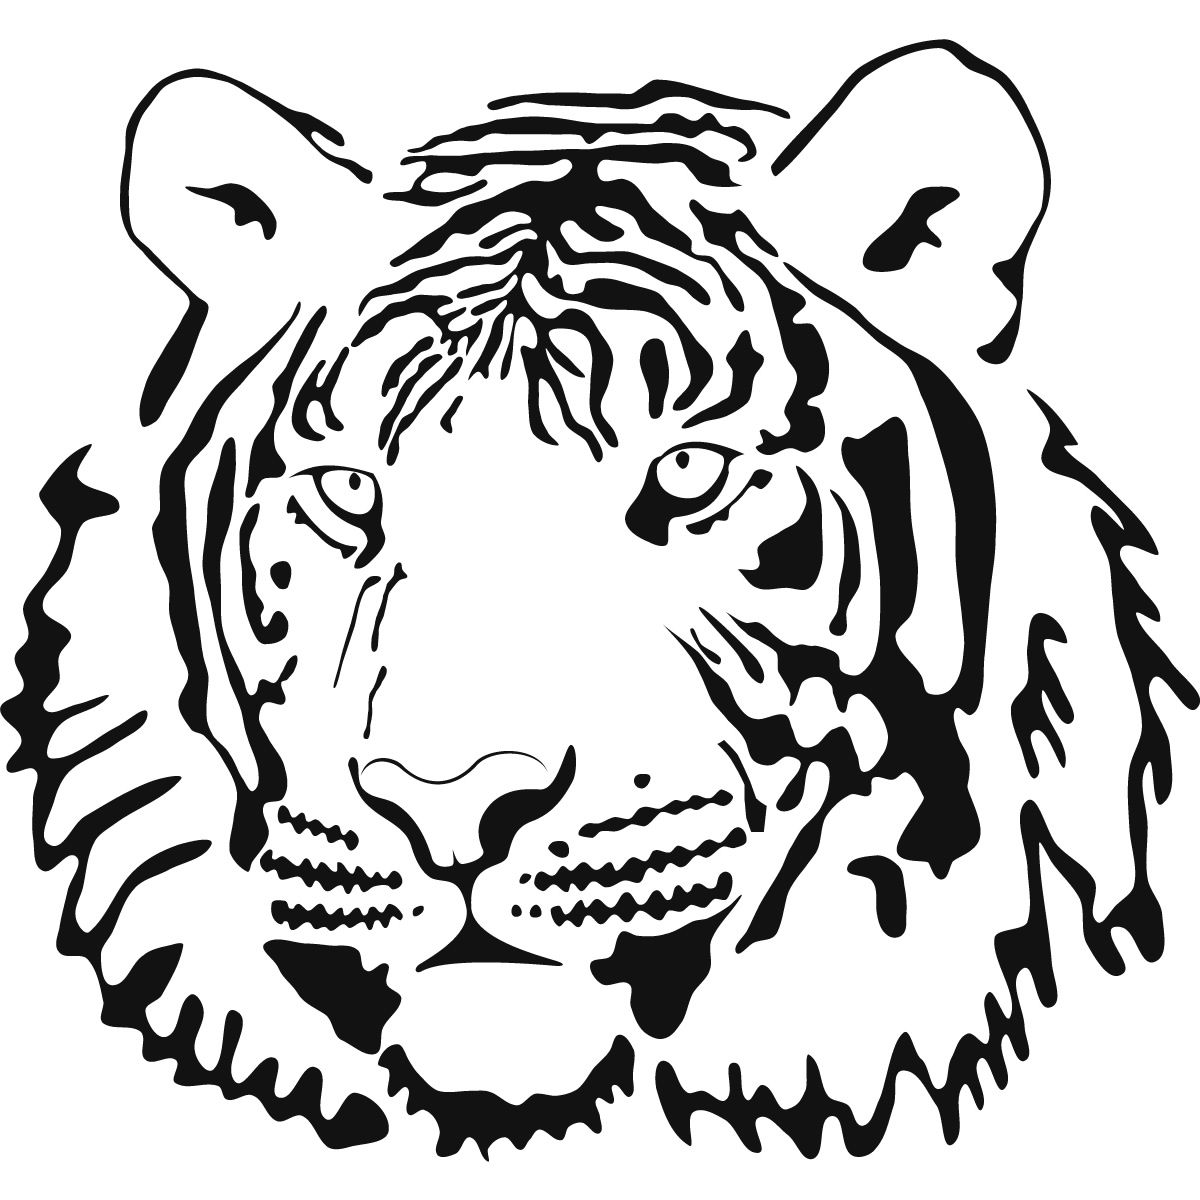 Tiger face coloring page coloring books sheets for Coloring pages of tiger